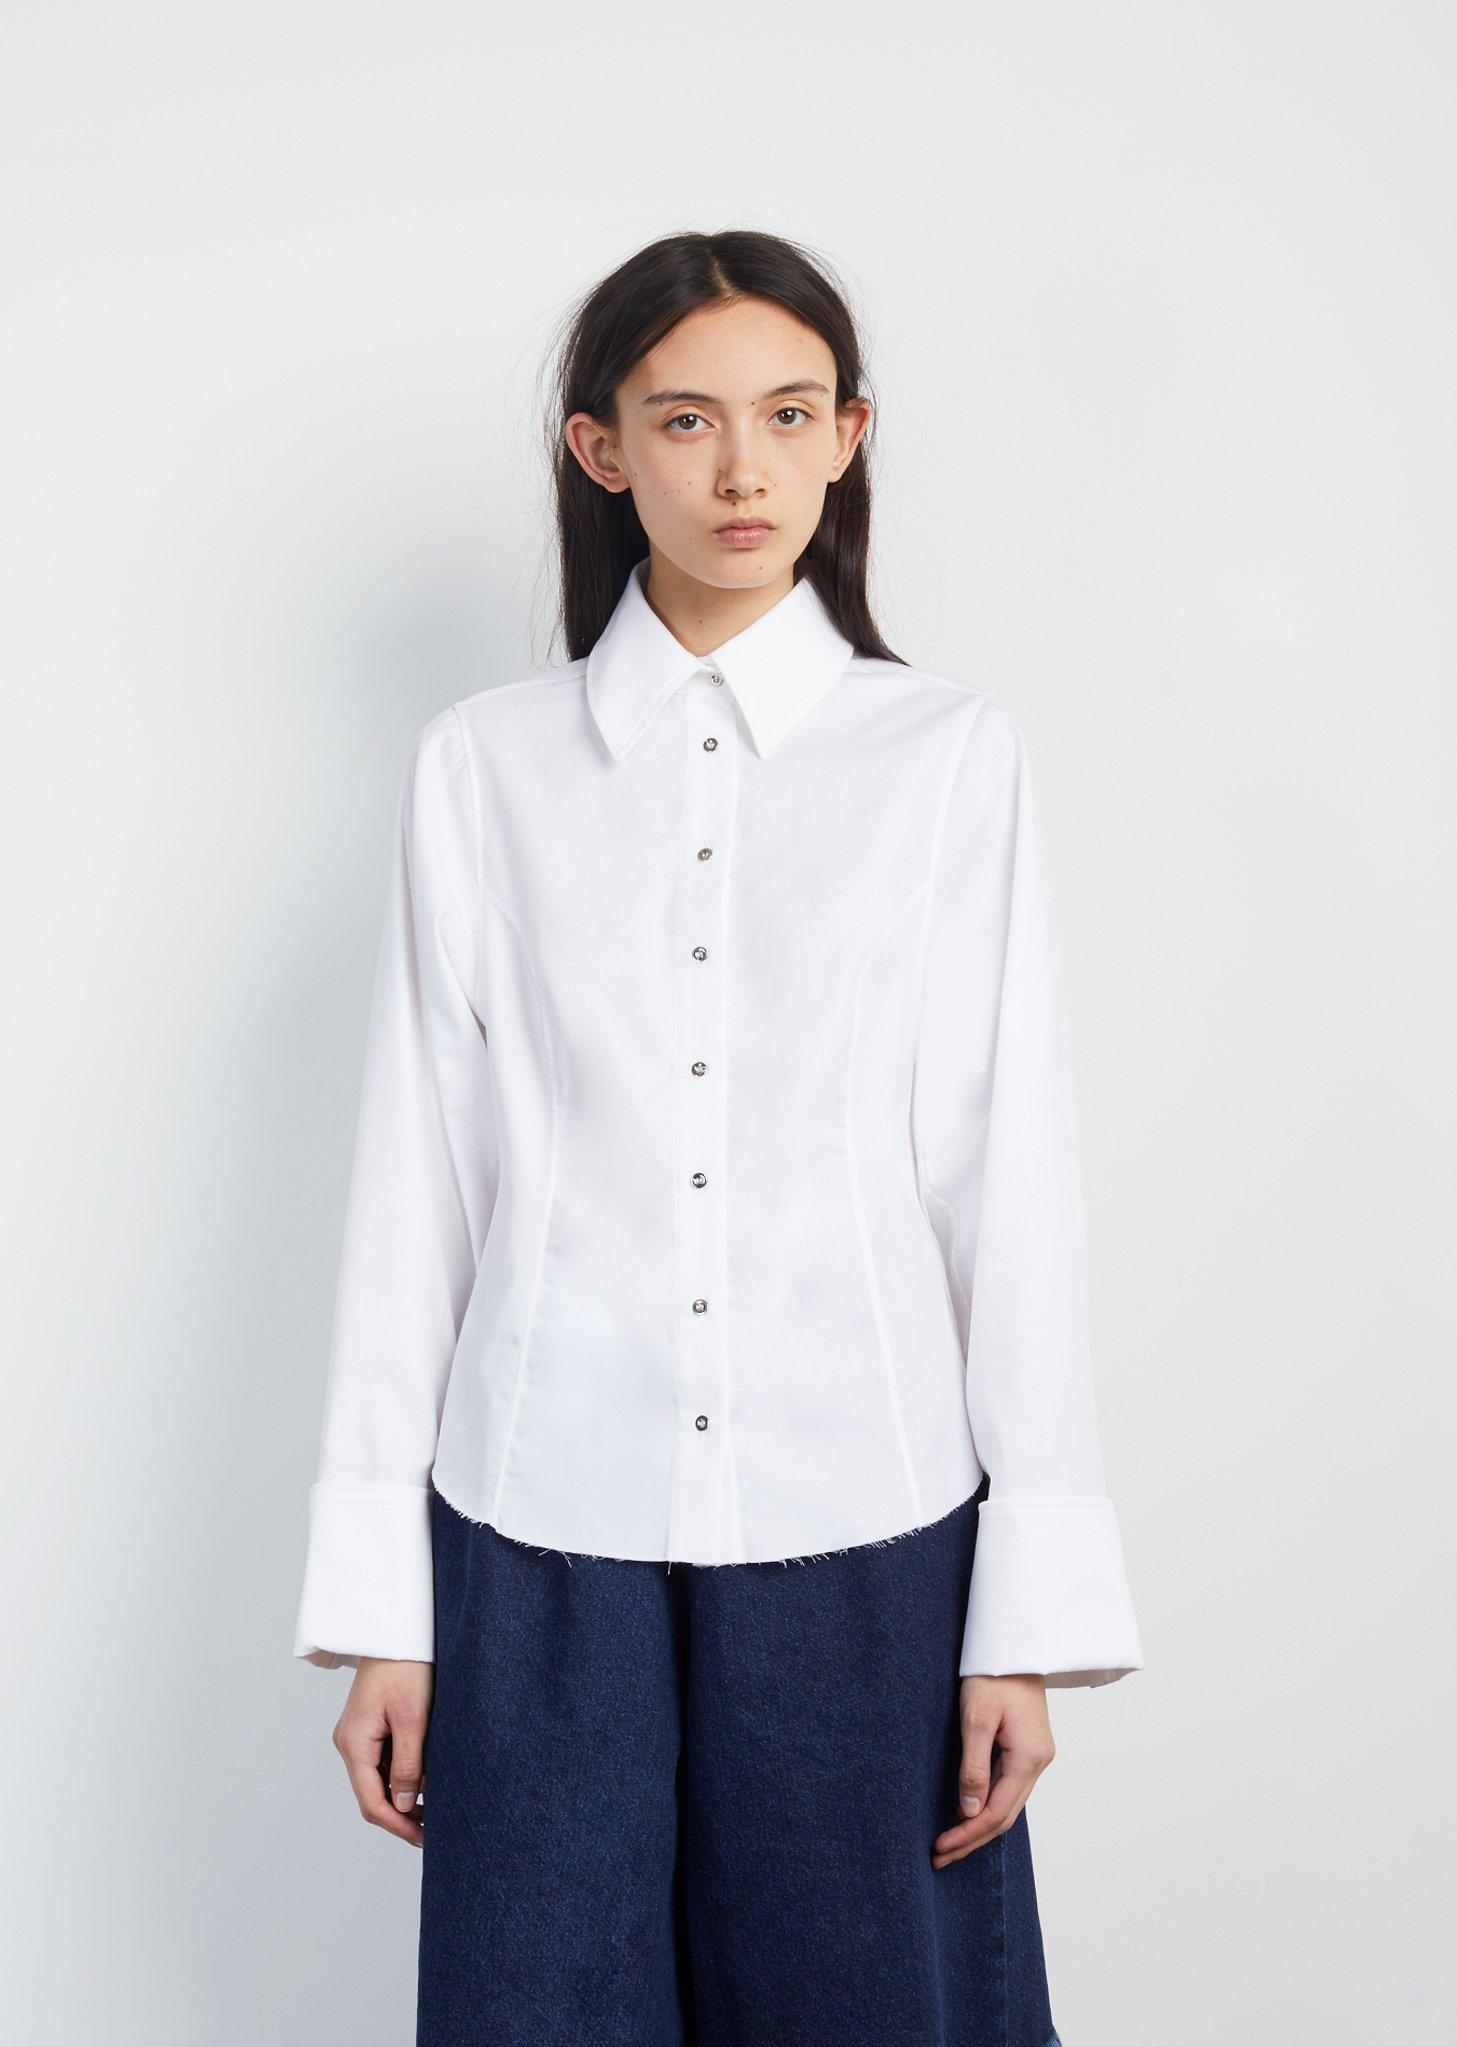 Outlet Real Embellished Frayed Cotton-twill Shirt - White Marques Almeida Buy Cheap Explore 100% Original Sale Pre Order 7BFkvG8jn